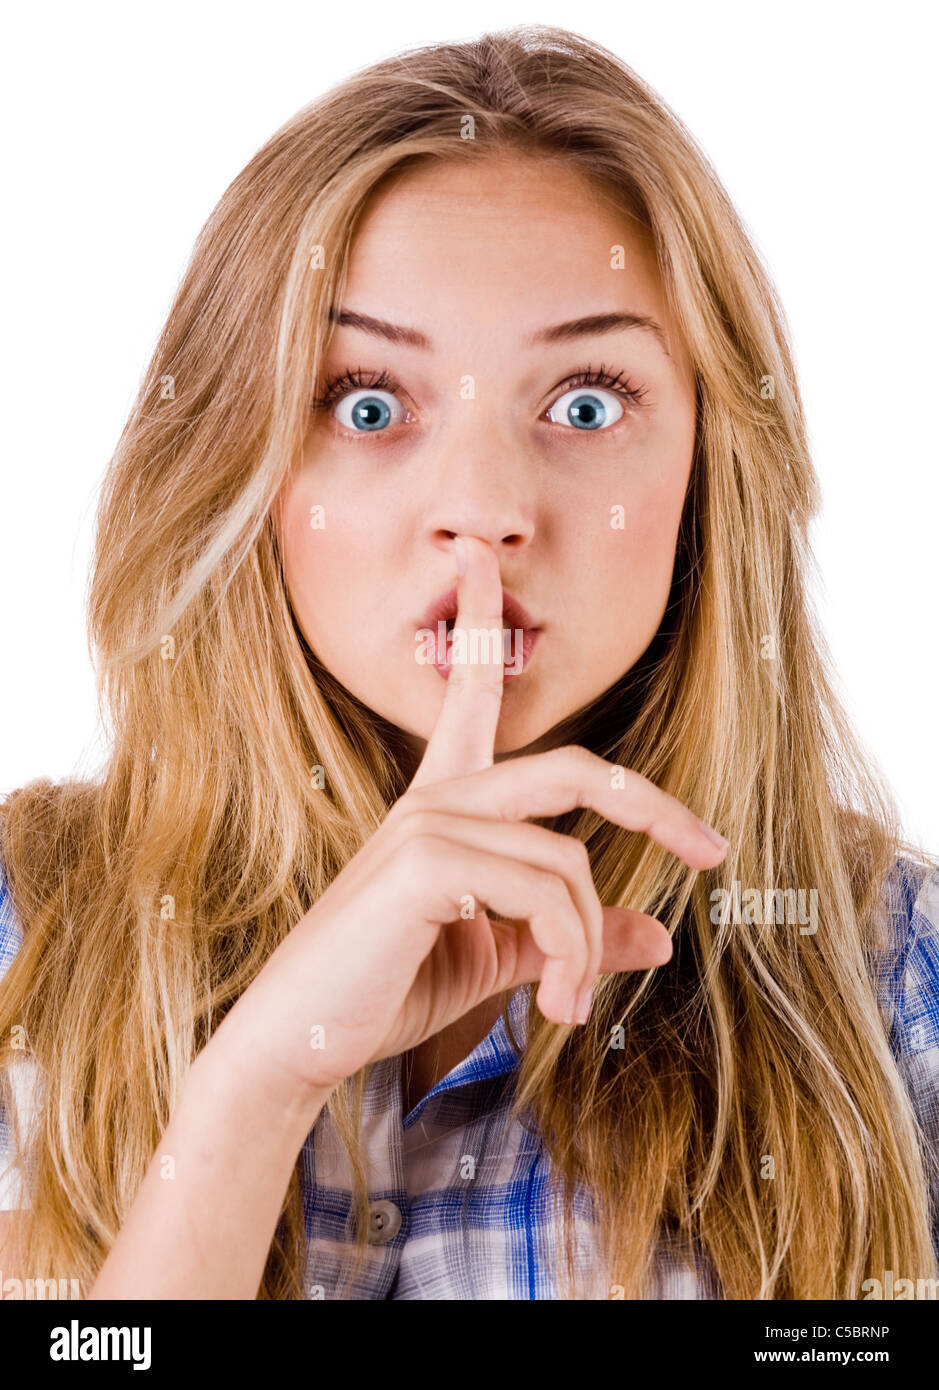 women says ssshhh to maintain silence on a white background stock